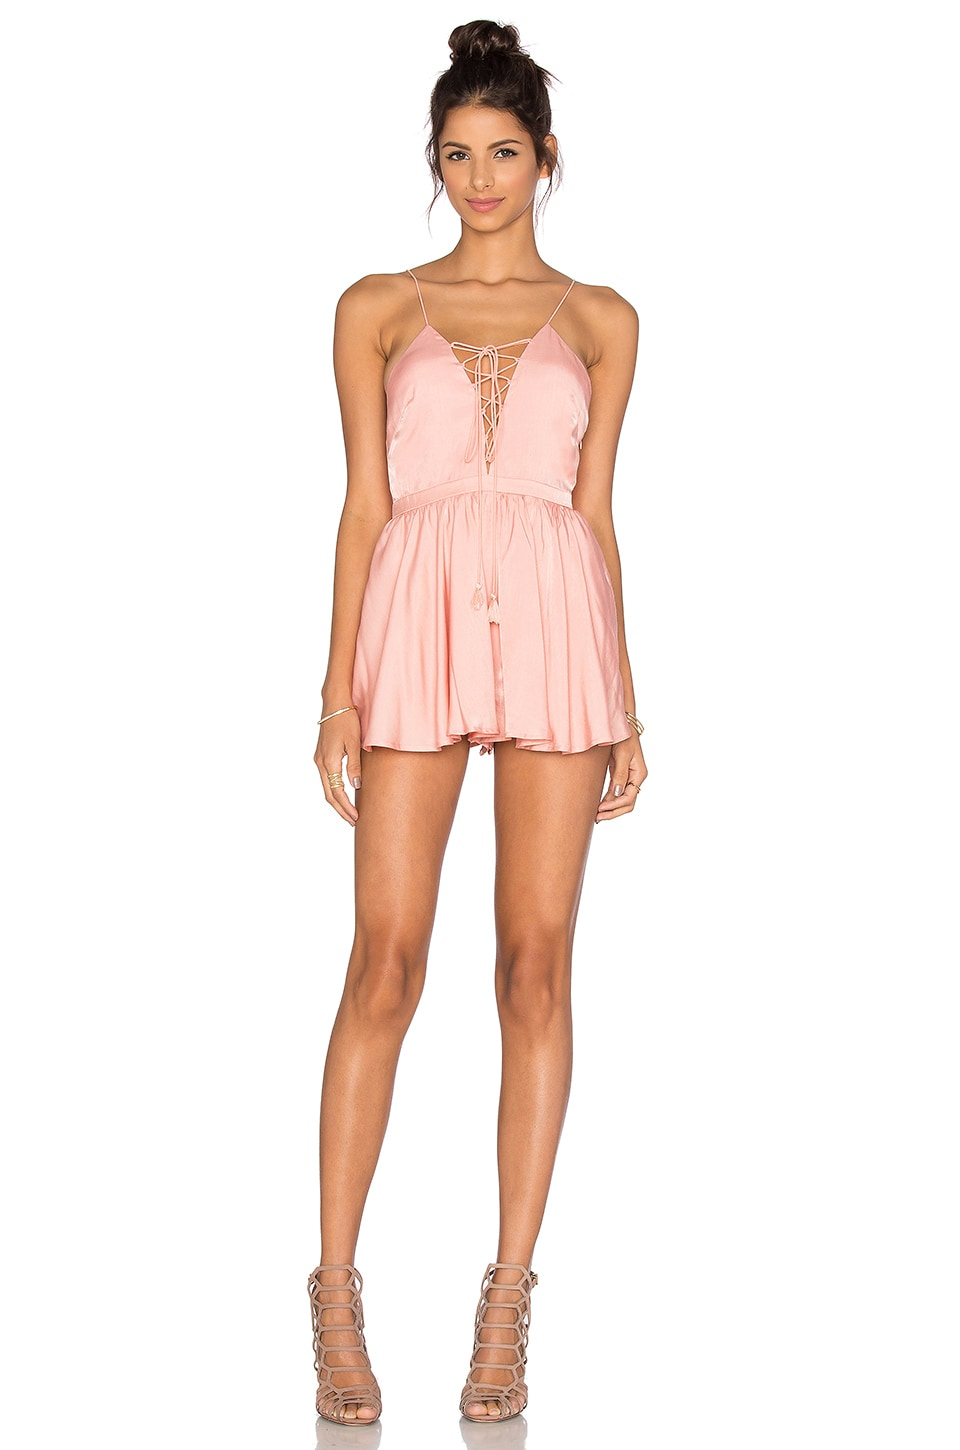 THE JETSET DIARIES Lotus Romper in Blush